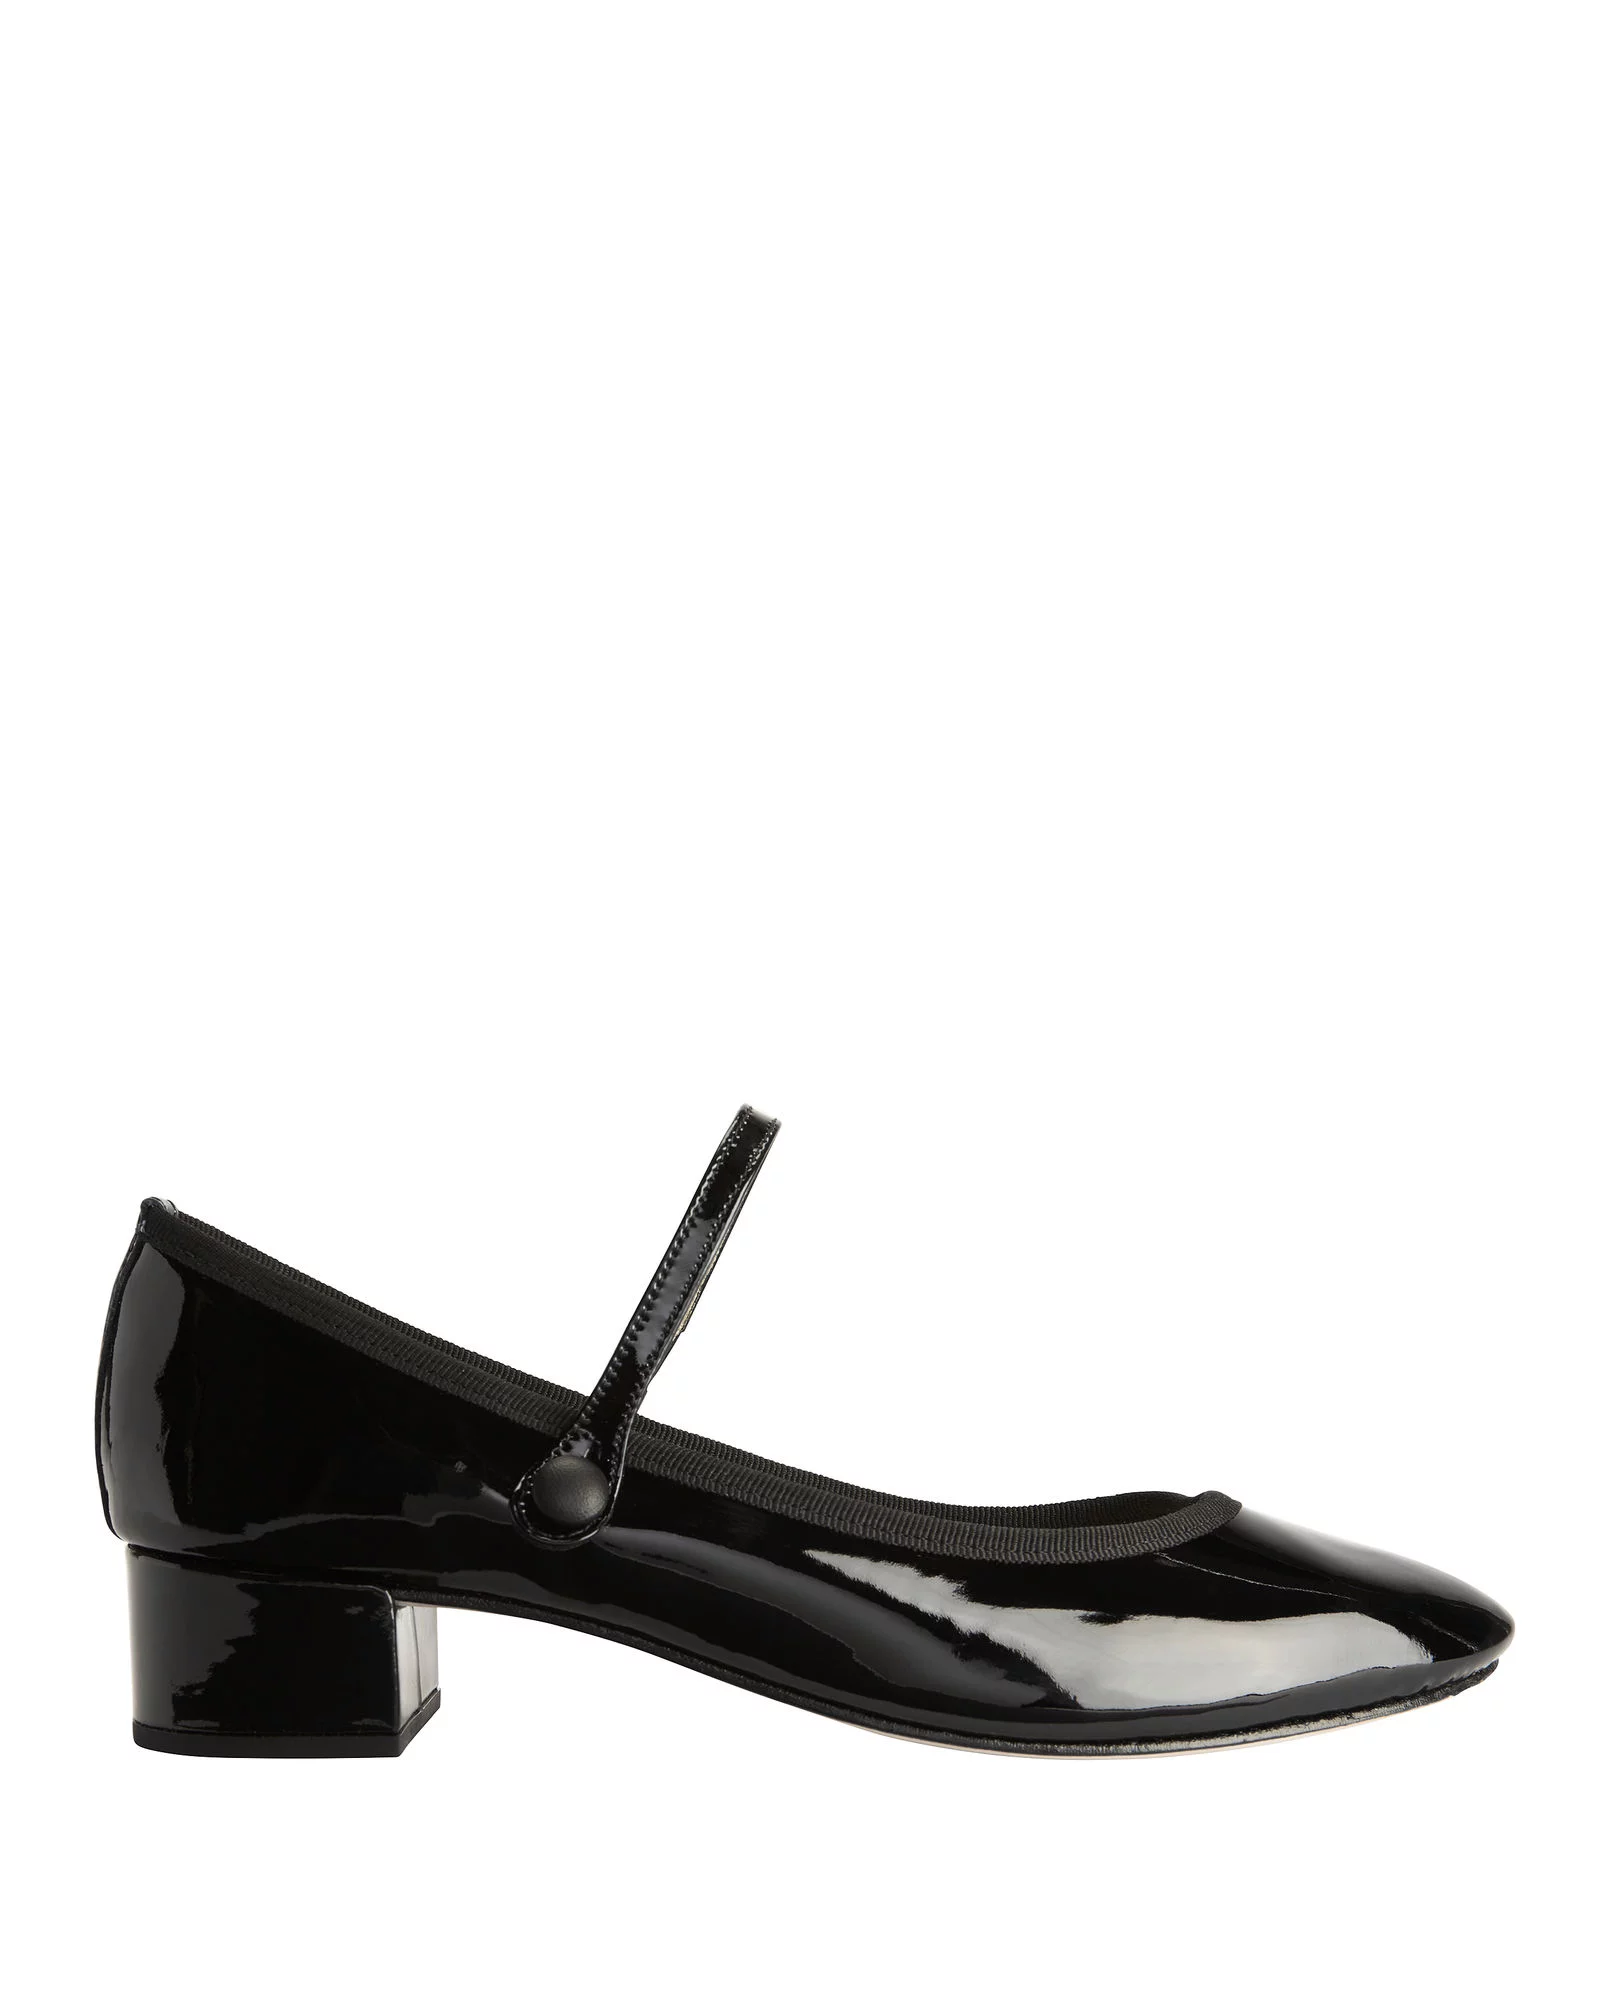 49a3766a75 Repetto + Patent Leather Mary Jane Heels